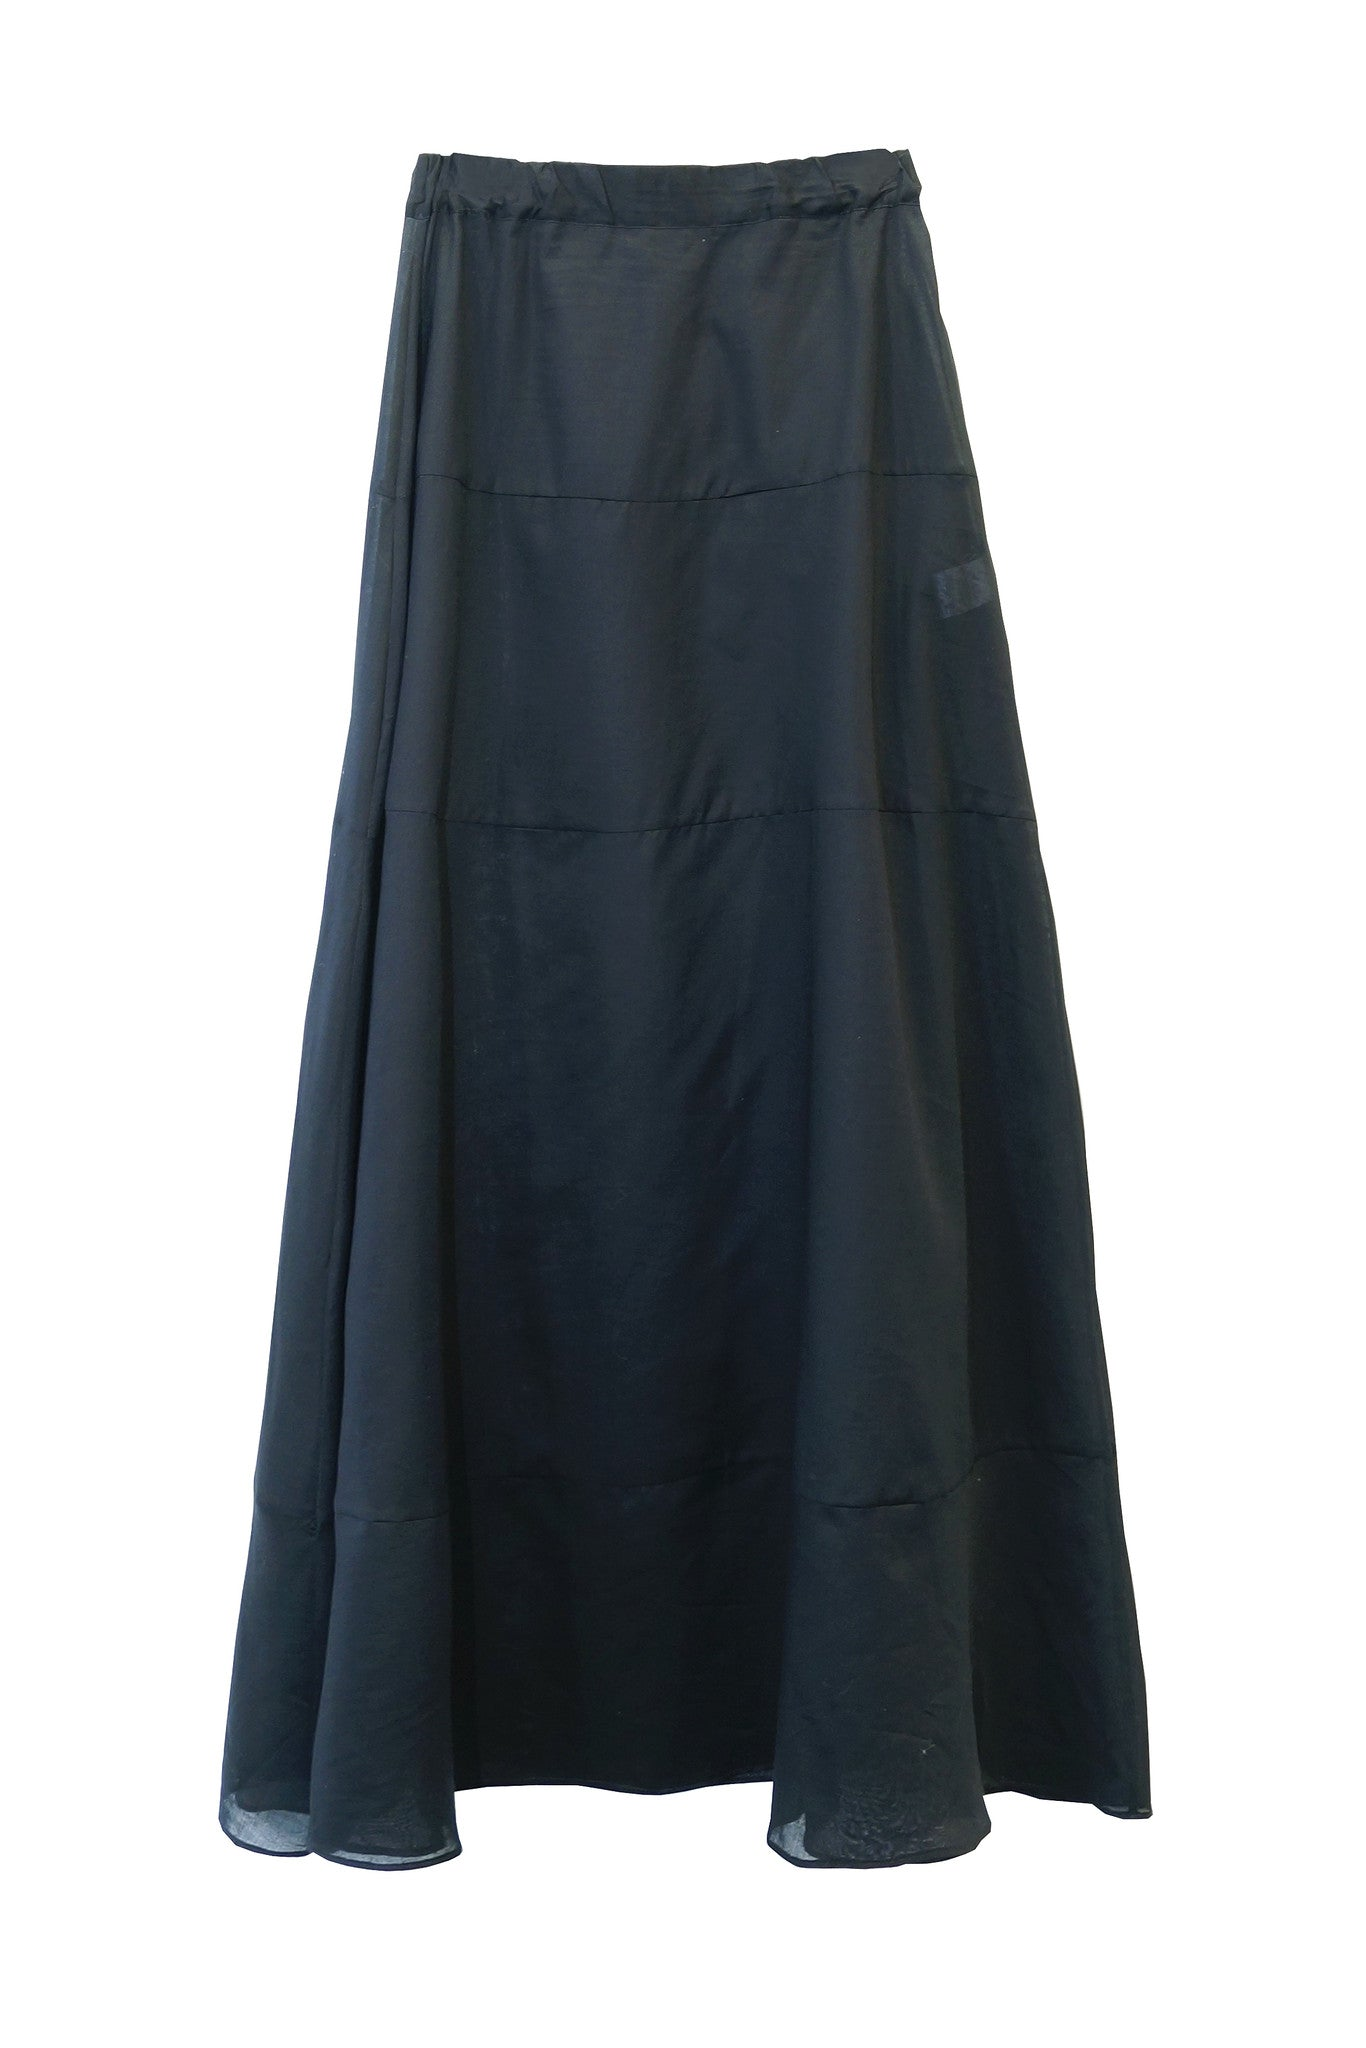 TRANSLUCENT COTTON VOILE MAXI SKIRT in BLACK